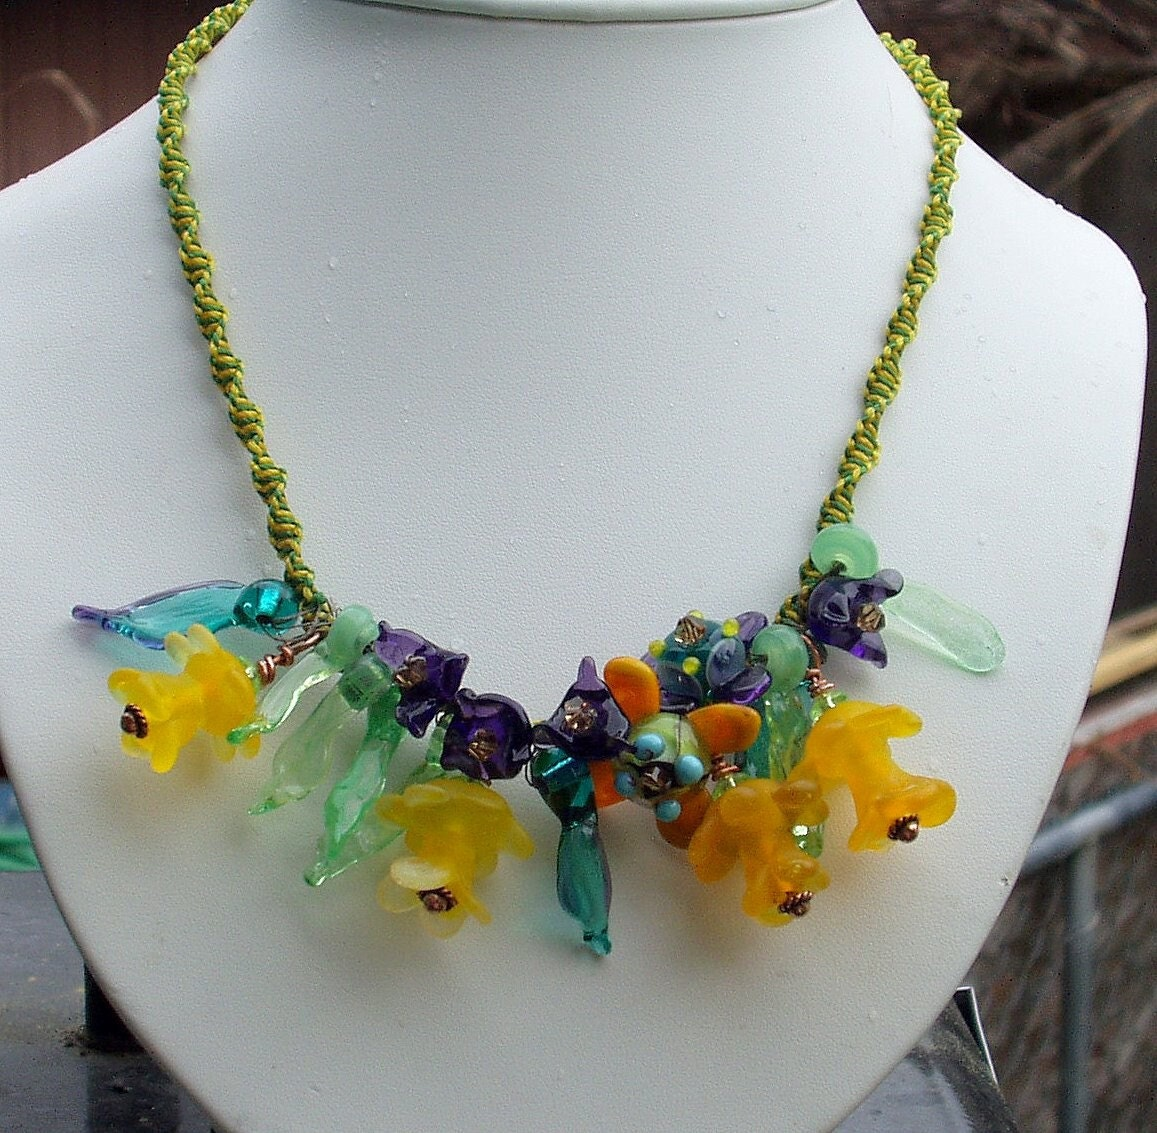 Incredible daffodil necklace CGGE EtsyBEAD Team SRA 4WC